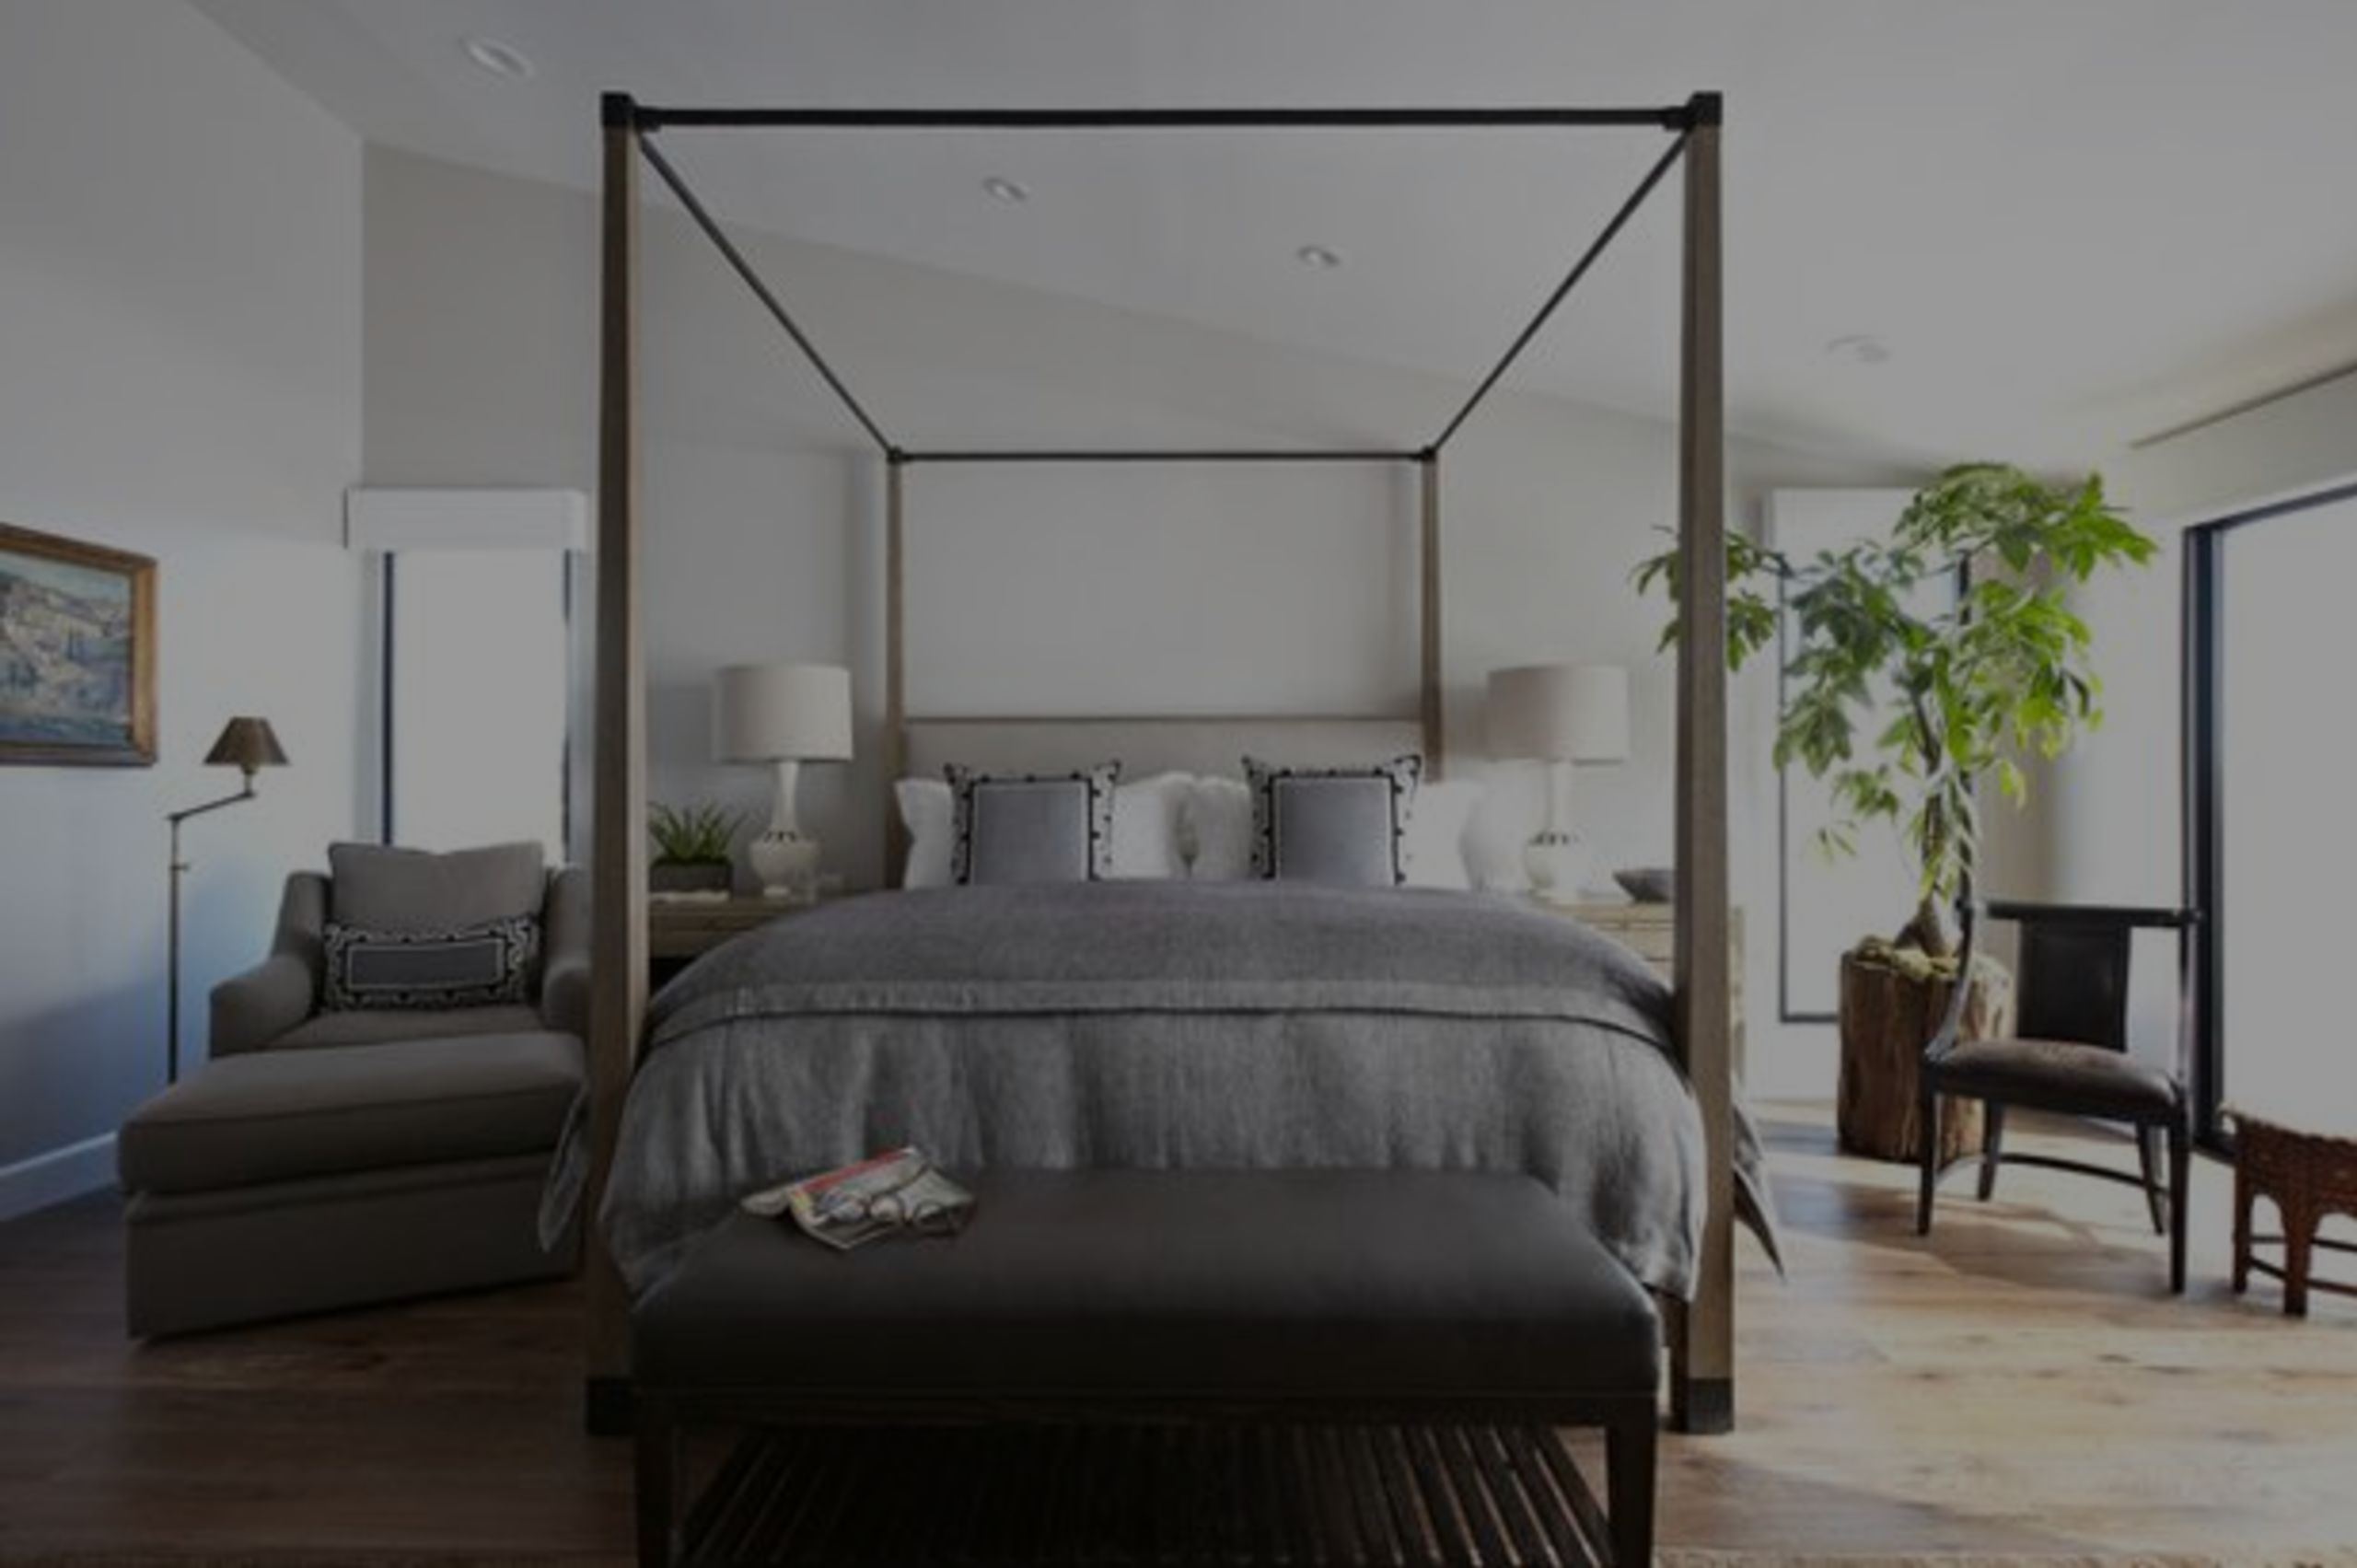 9 Feng Shui Design Moves for Your Bedroom